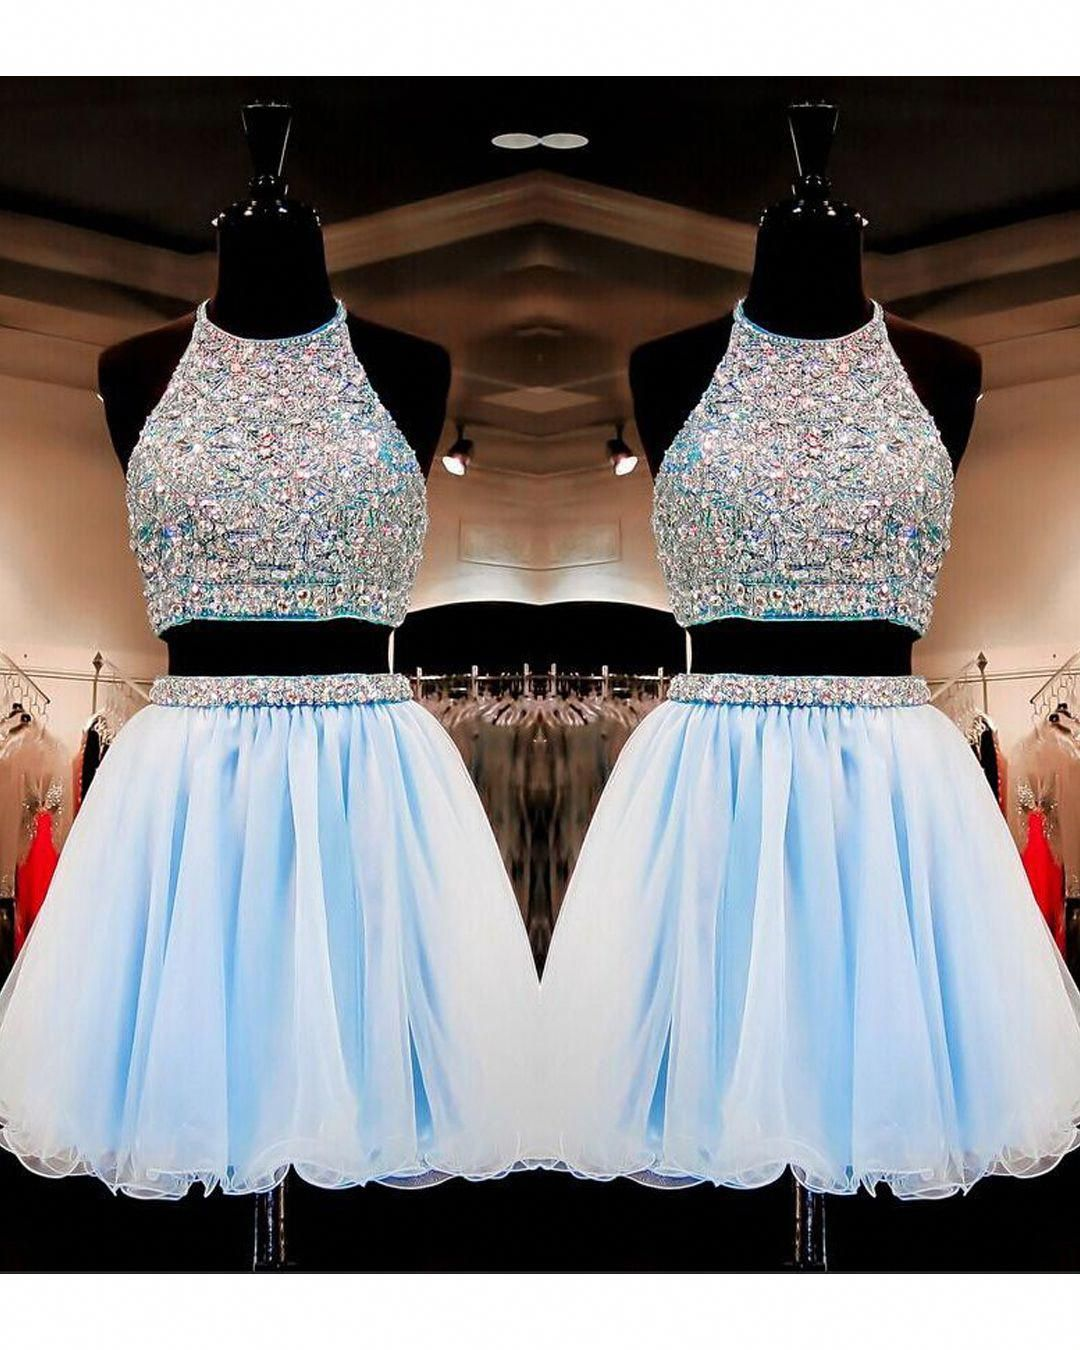 bcab84a62c9 Sweet 16 Gowns Light Sky Blue Tulle Short Homecoming Dresses Dress 2 Pieces  With Beading  homecomingdressespretty